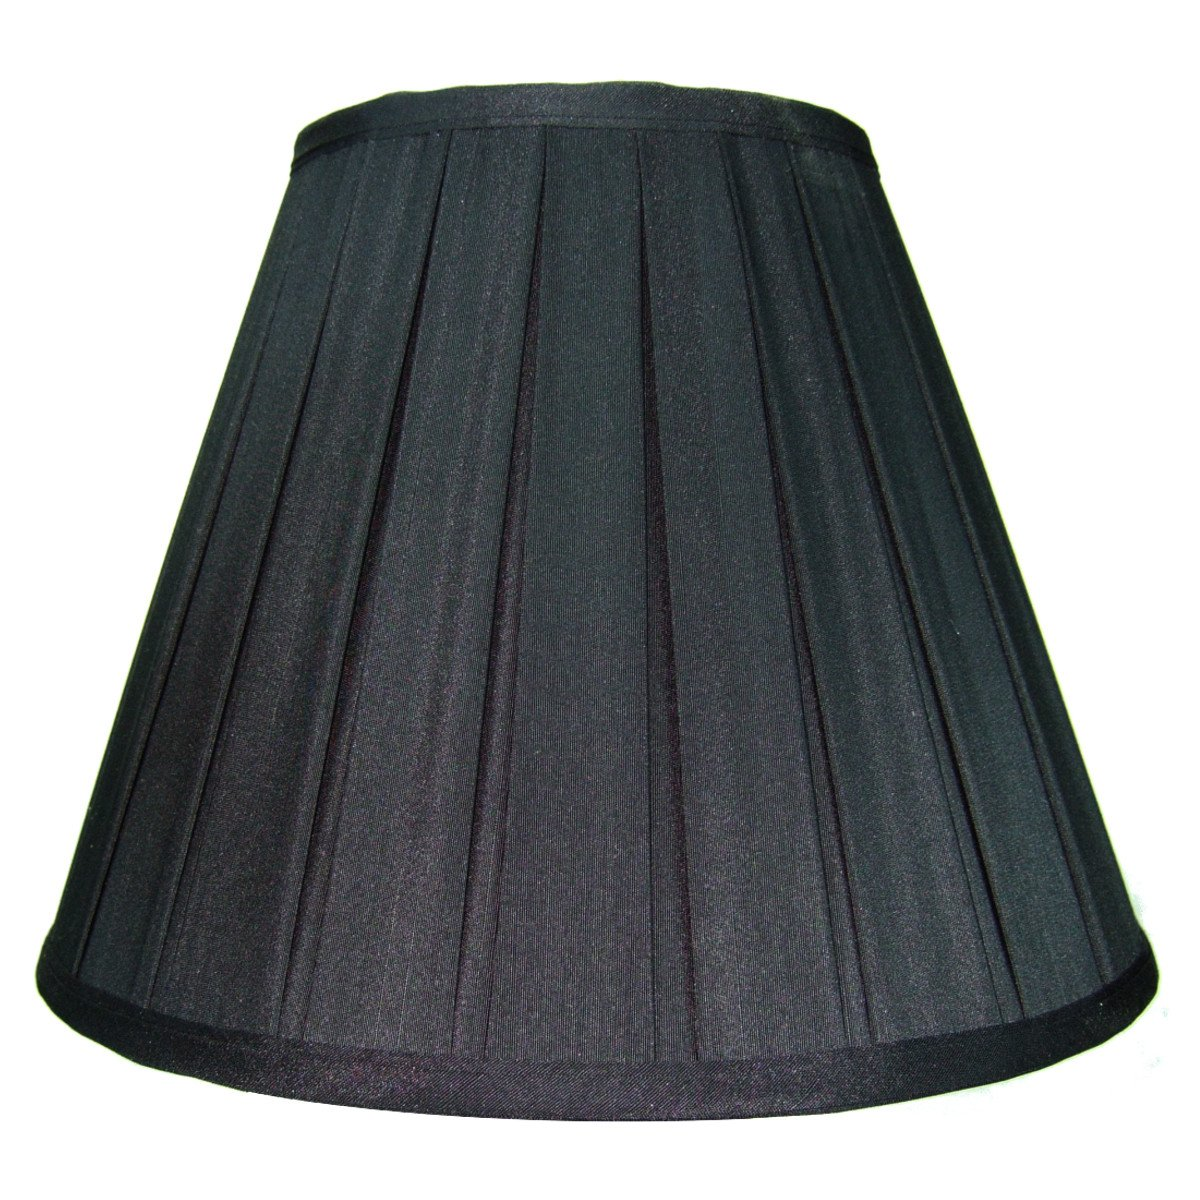 6x12x9 Black Empire Lampshade with Gold Liner By Home Concept - Perfect for small table lamps, desk lamps, and accent lights -Medium, Black